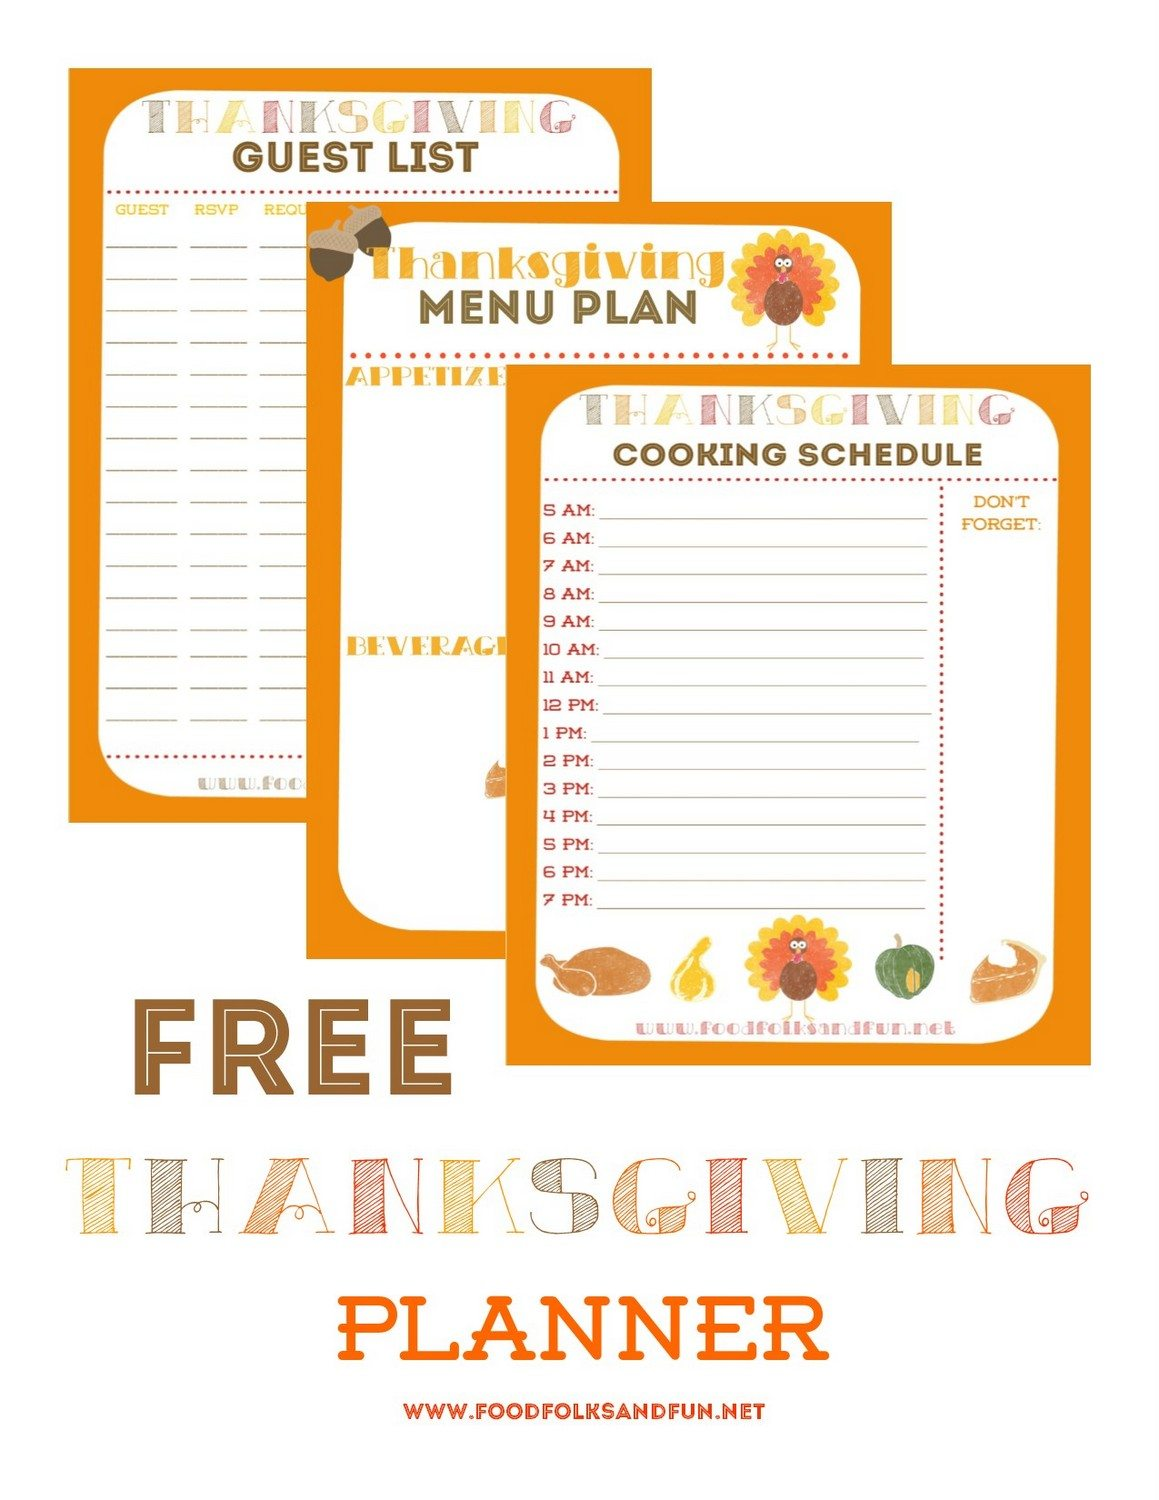 graphic regarding Thanksgiving Menu Planner Printable titled Thanksgiving Planner - 5 Cost-free Printables! Meals, People and Enjoyable